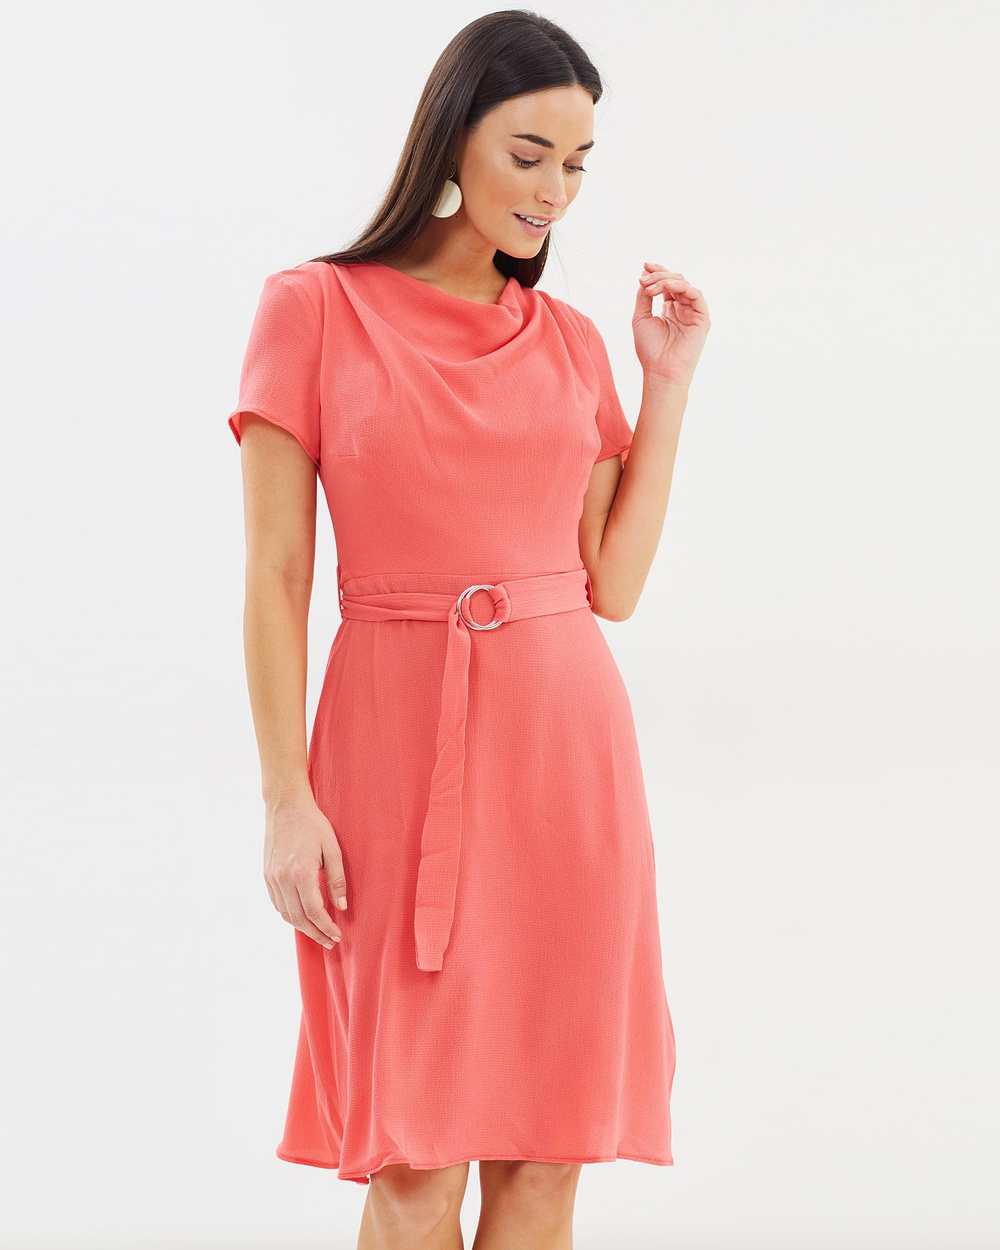 Dorothy Perkins Cowl Neck Dress Dresses Coral Cowl-Neck Dress